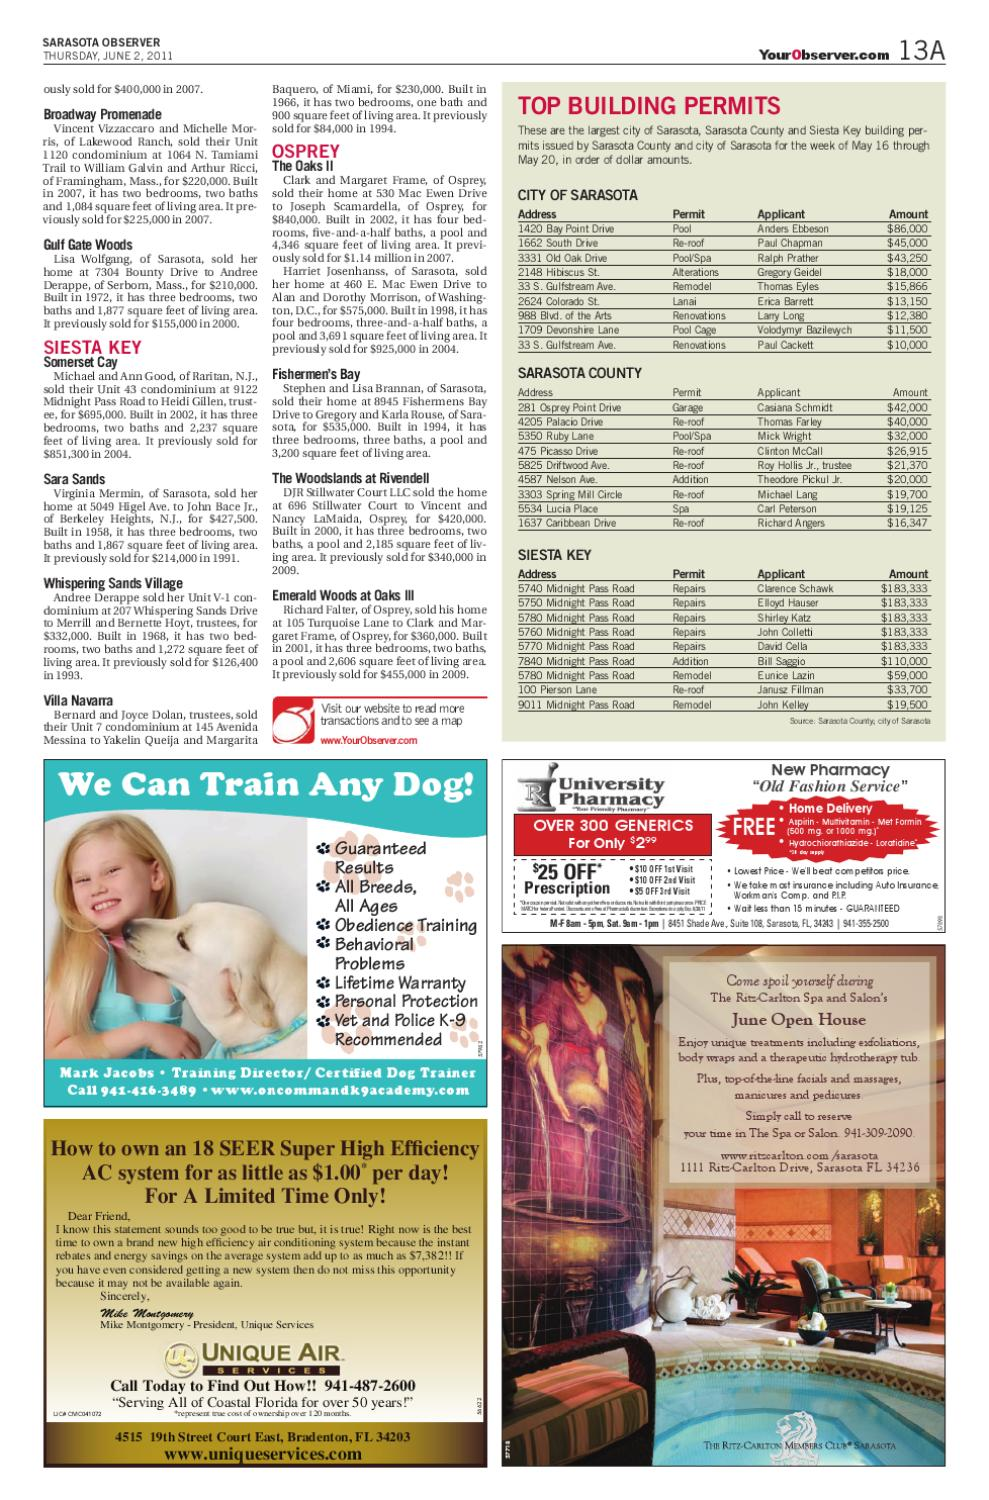 Salon De Massage Angers Sarasota Observer June 2 2011 By Jessica Luck Issuu